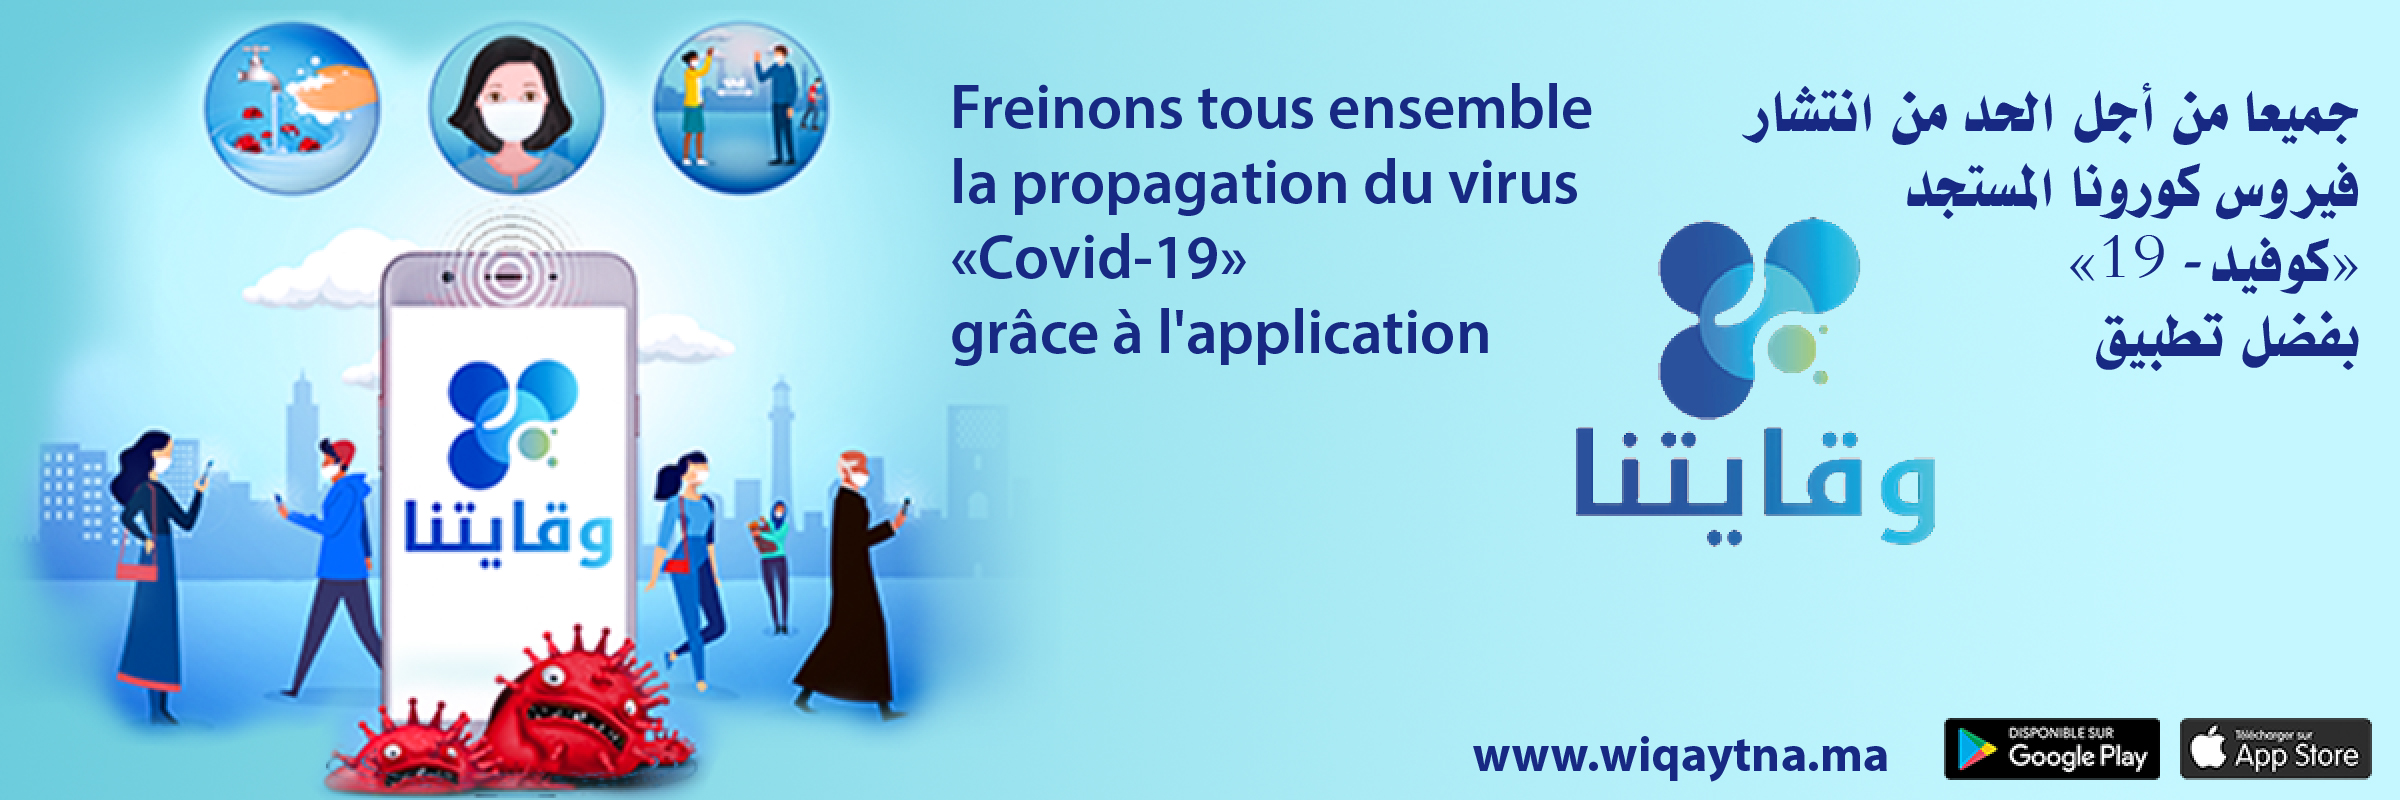 Freinons_tous_ensemble_la_propagation_du_virus__Covid-19__grace_a_lapplication_Wiqaytna